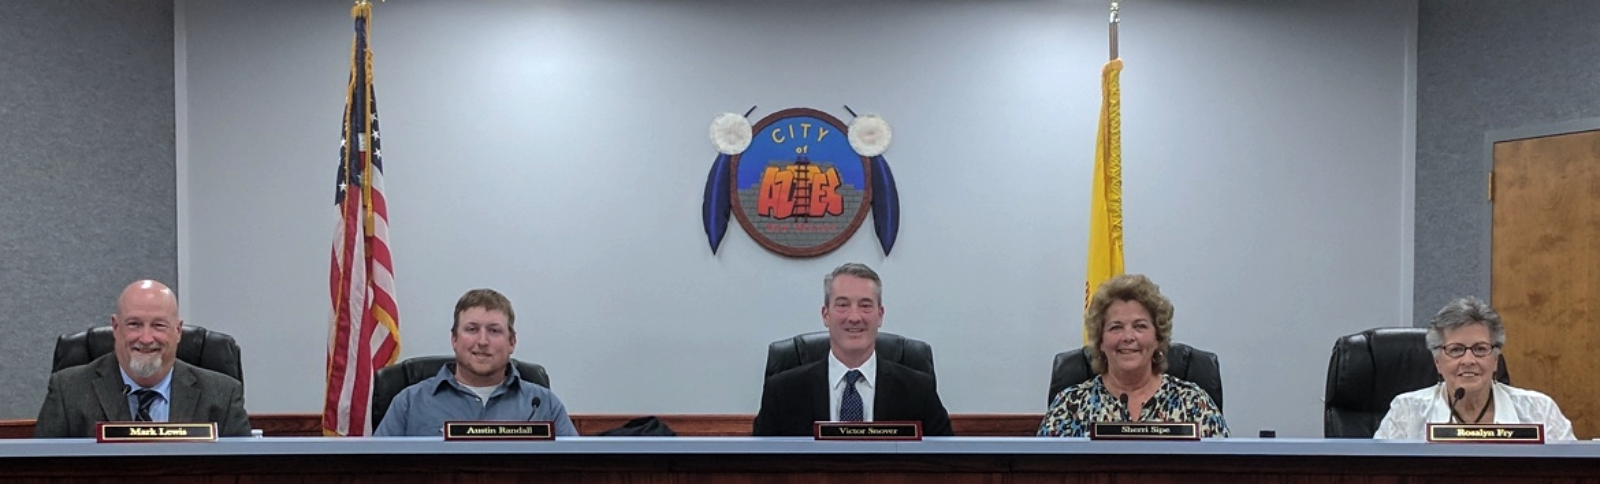 Photo of City Commissioners